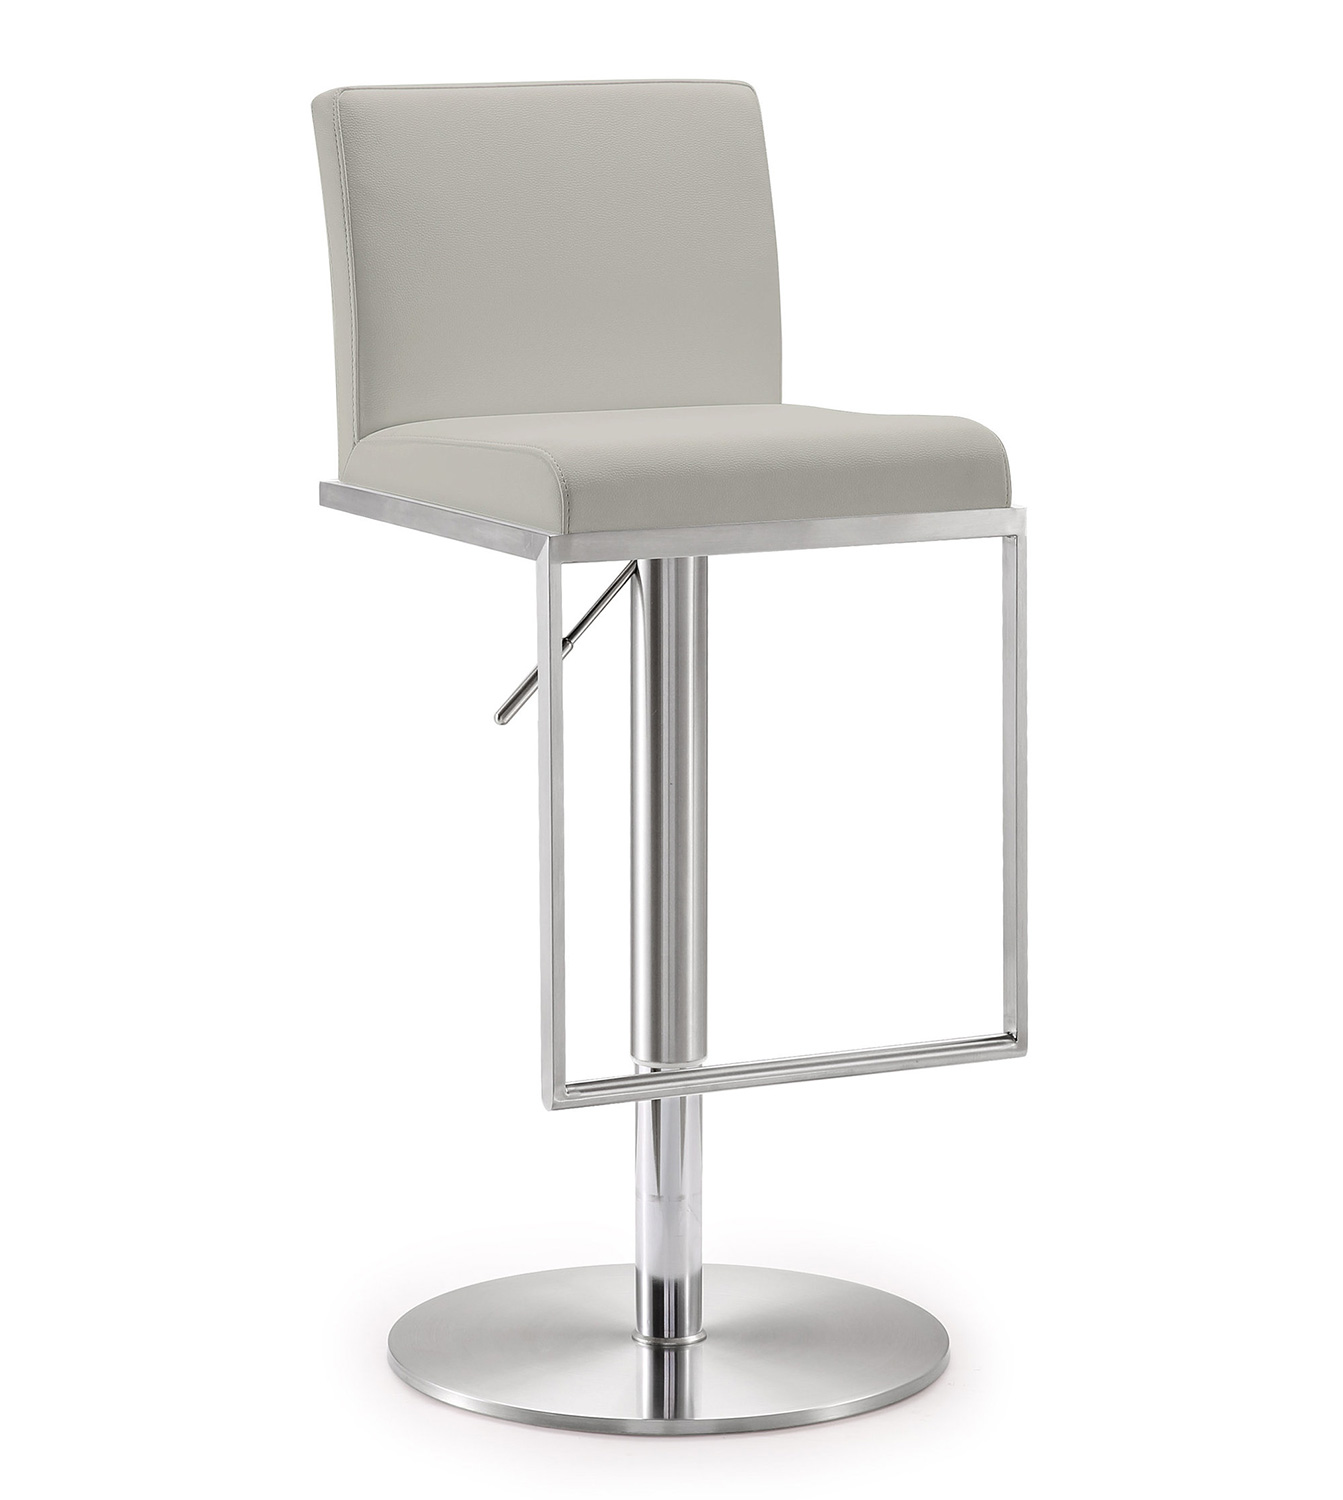 TOV Furniture Amalfi Adjustable Barstool - Grey